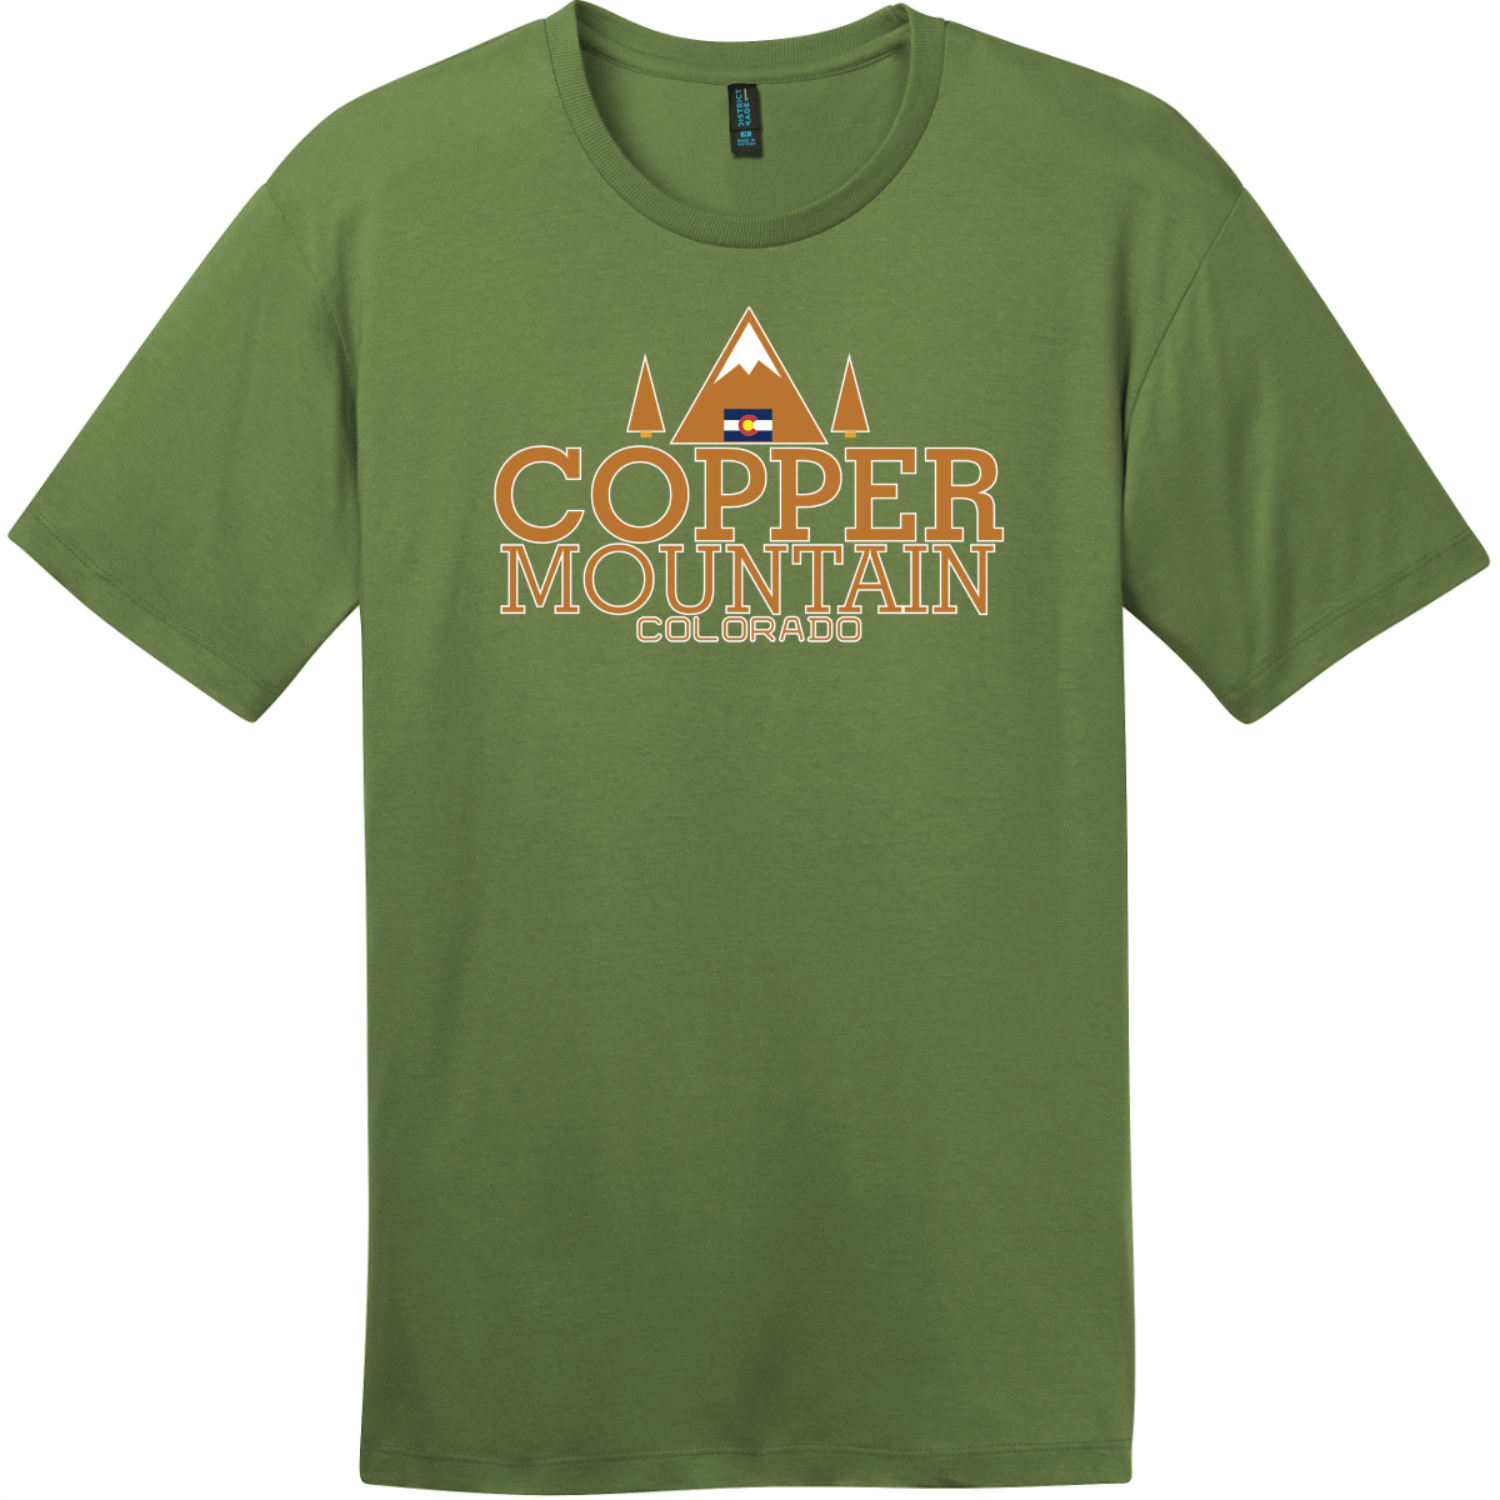 Copper Mountain Colorado T-Shirt Fresh Fatigue District Perfect Weight Tee DT104